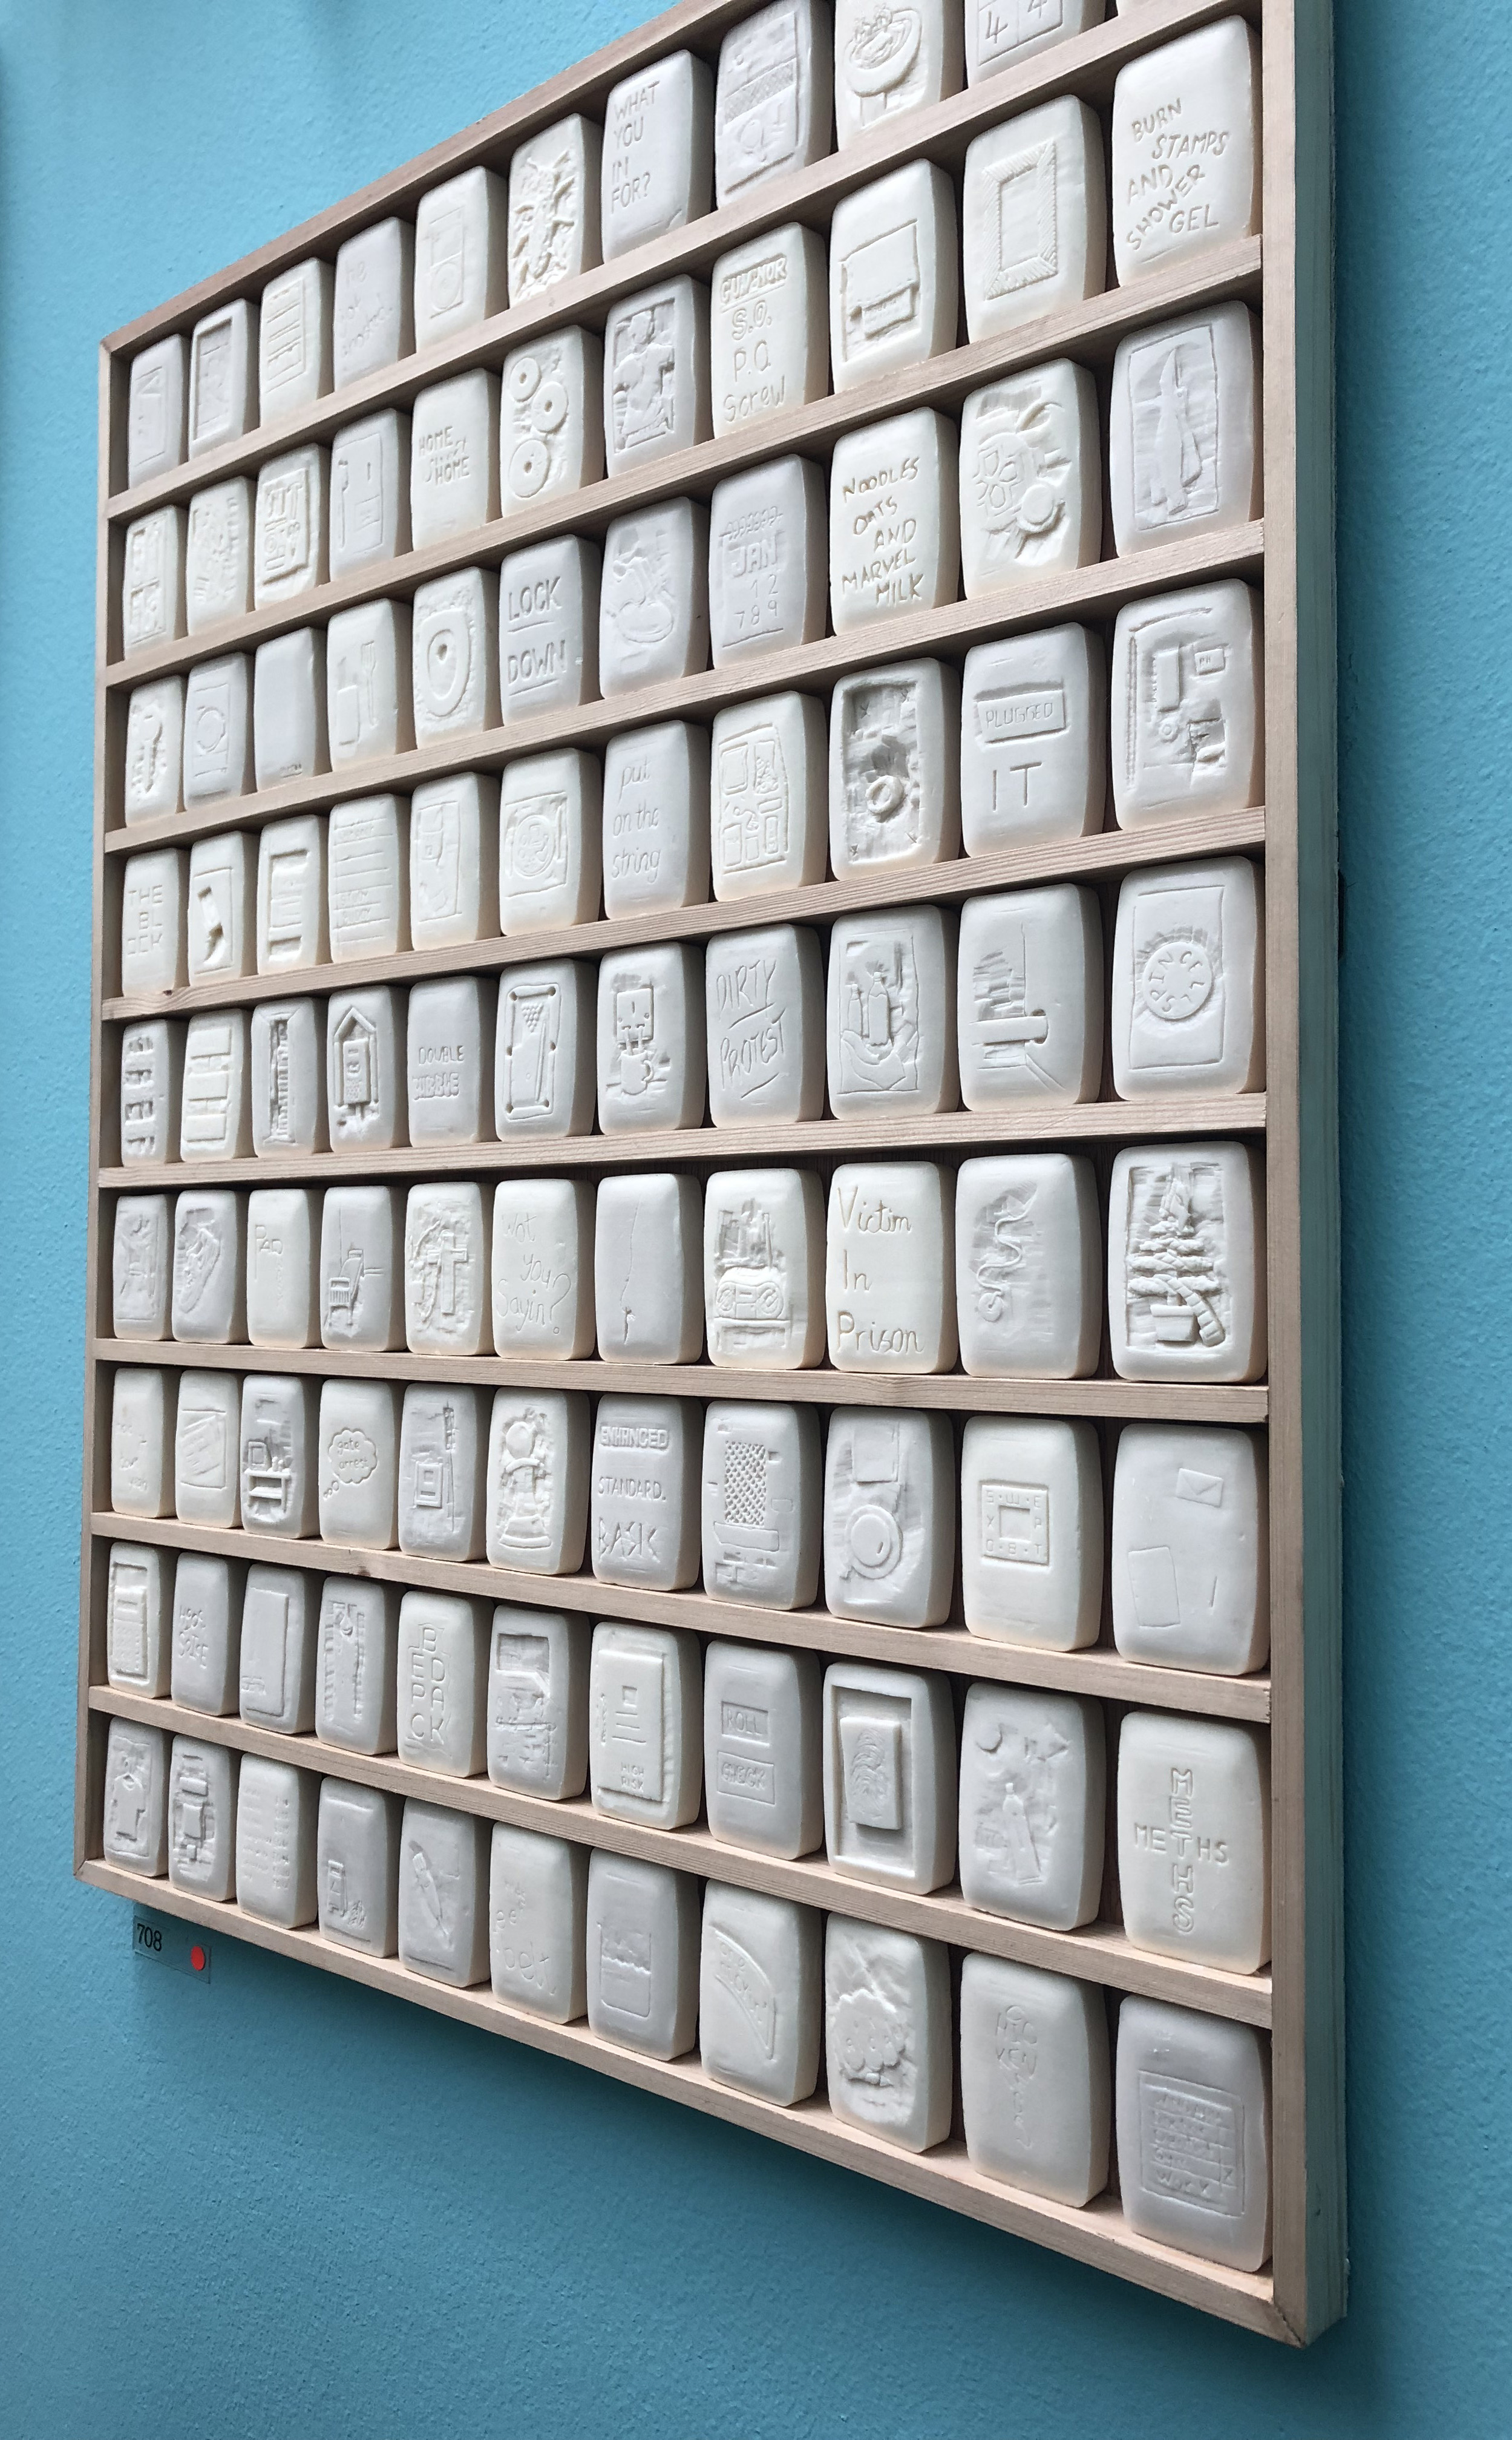 Lee Cutter, Prison Culture, Summer Exhibition 2018 Soap Bars with Engravings